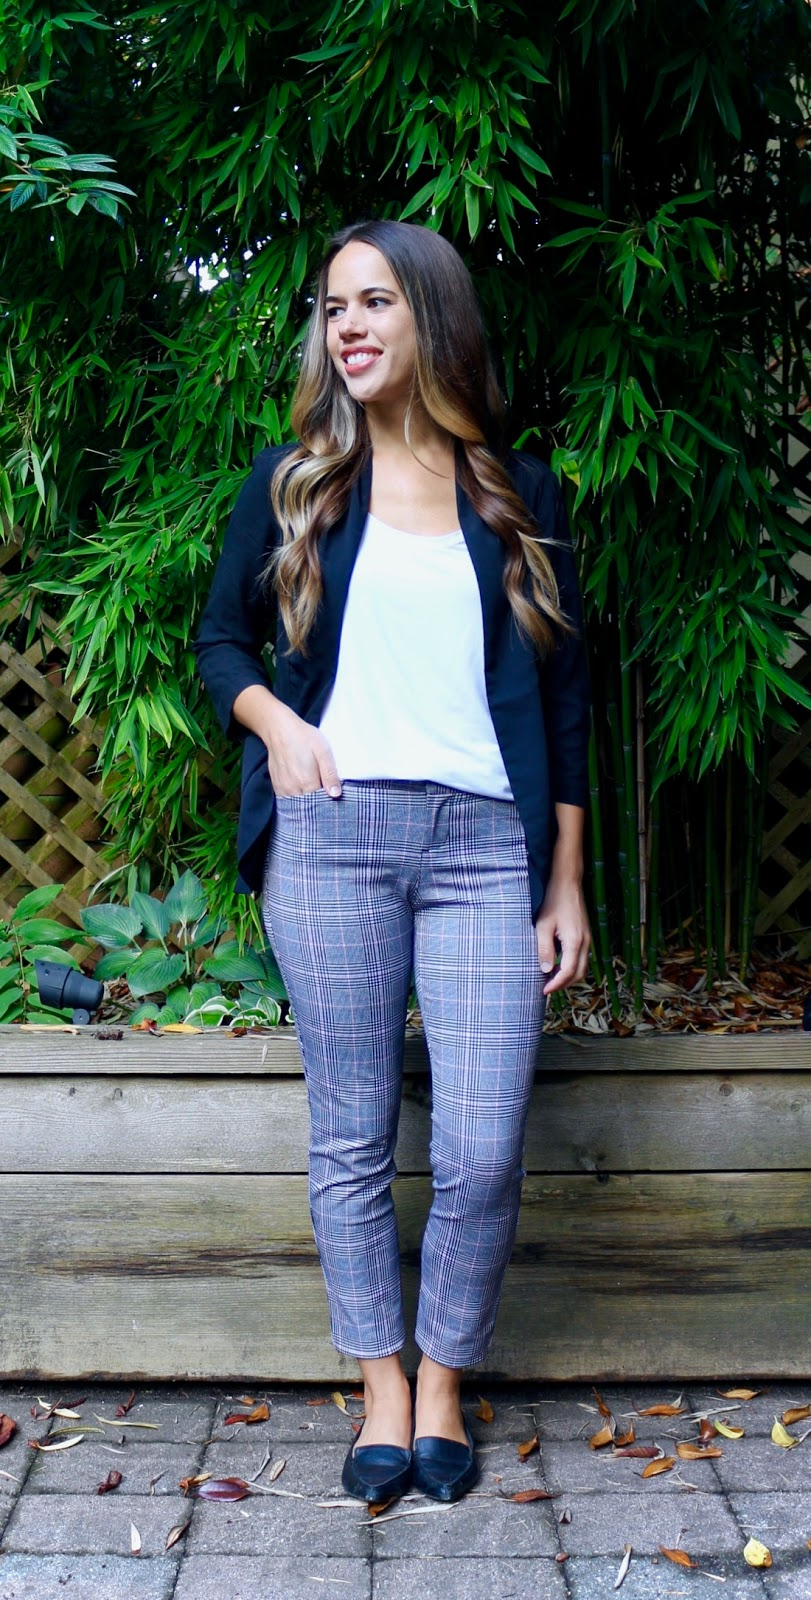 Jules in Flats - Plaid Ankle Pants (Business Casual Fall Workwear on a Budget)